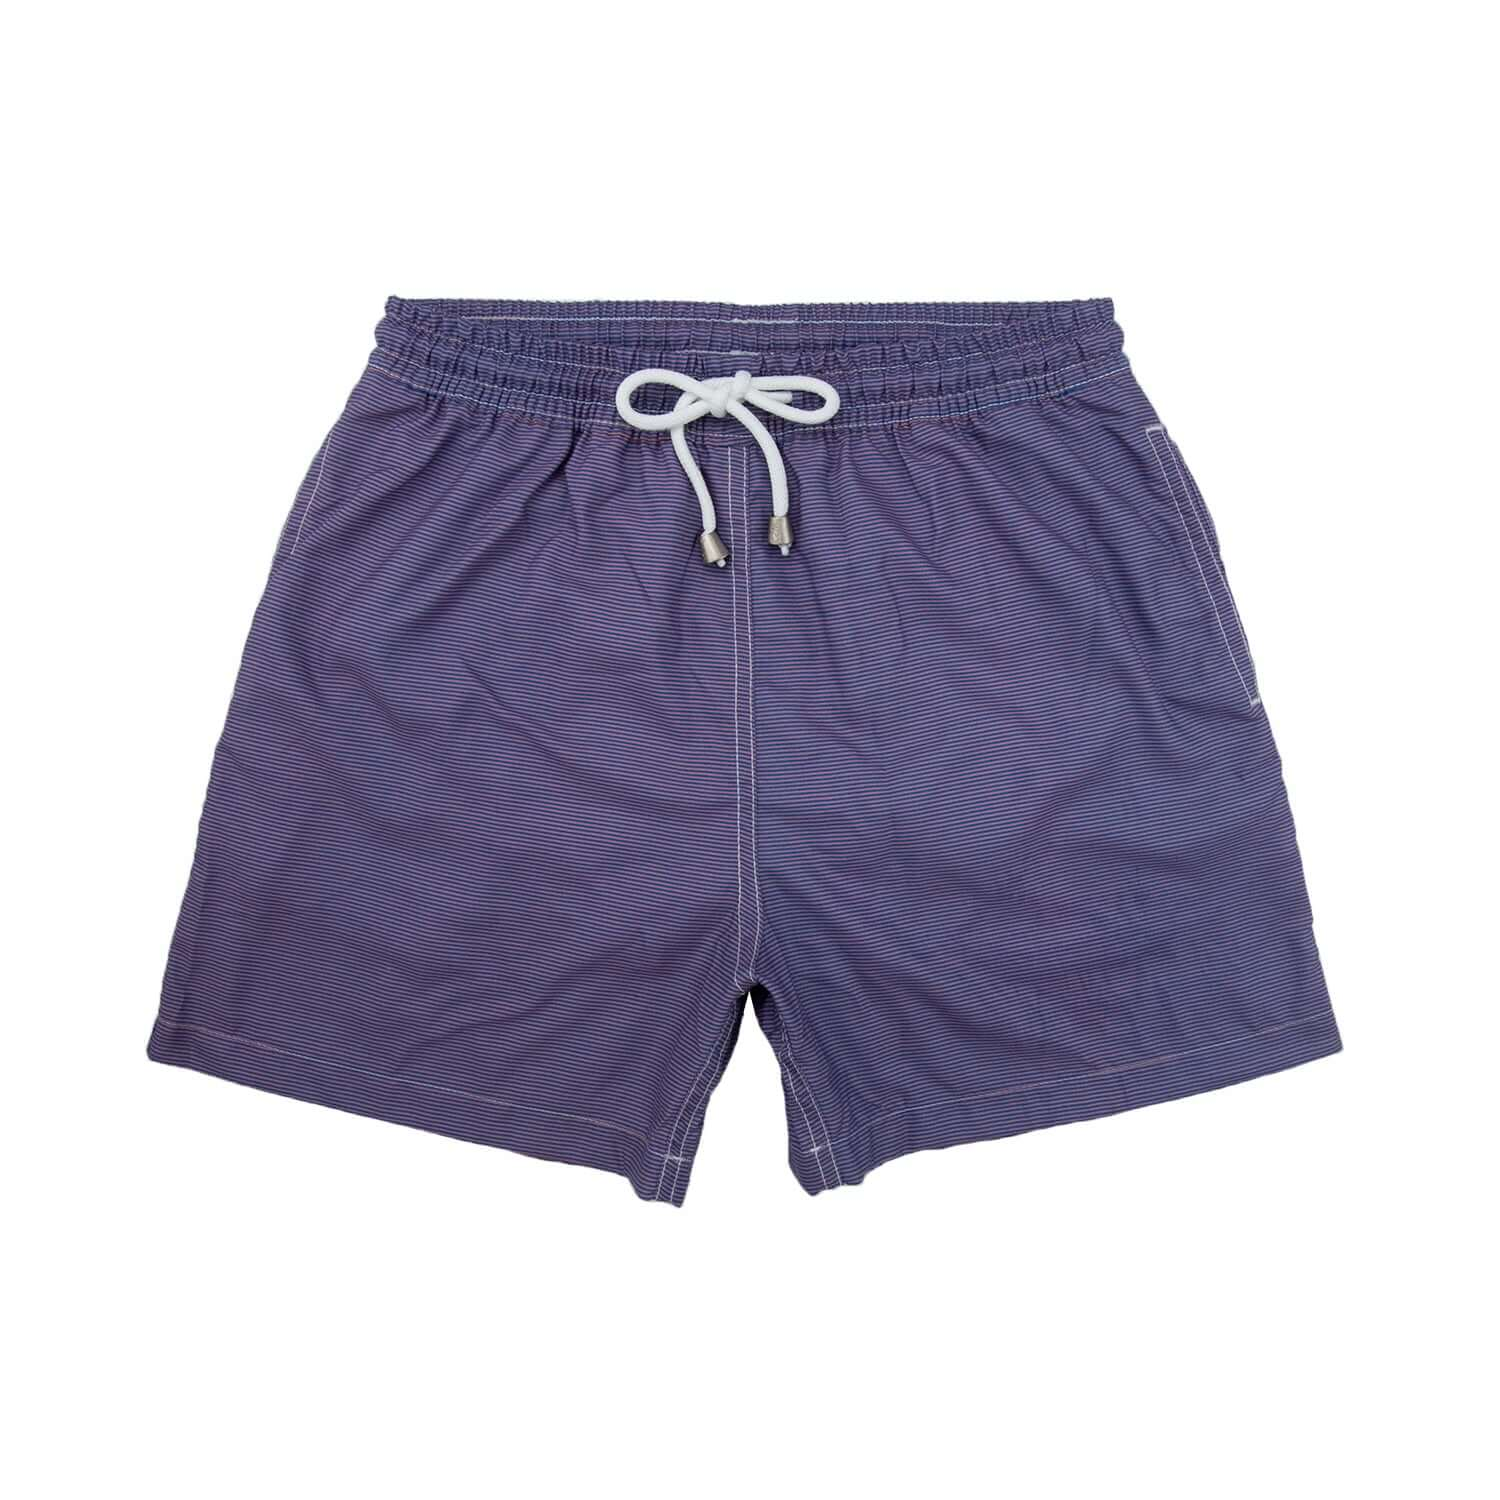 STRIPES PURPLES - Clorofila Sea Wear